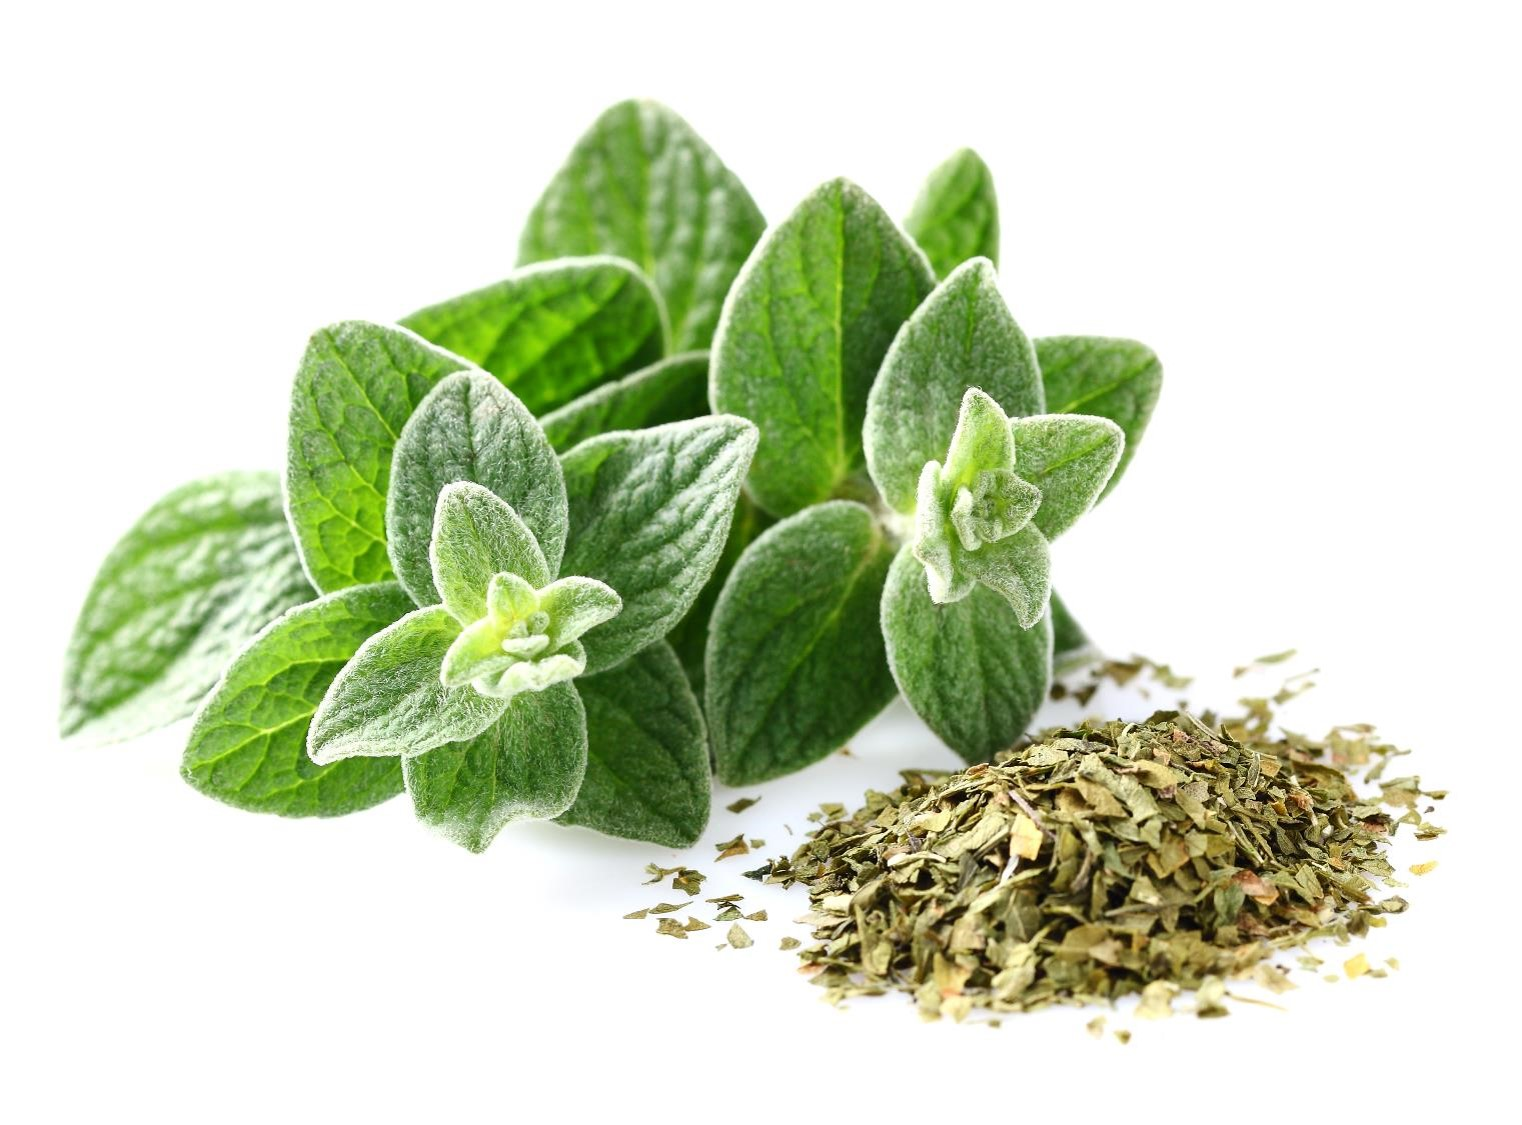 FIND OUT MORE ABOUT OREGANO